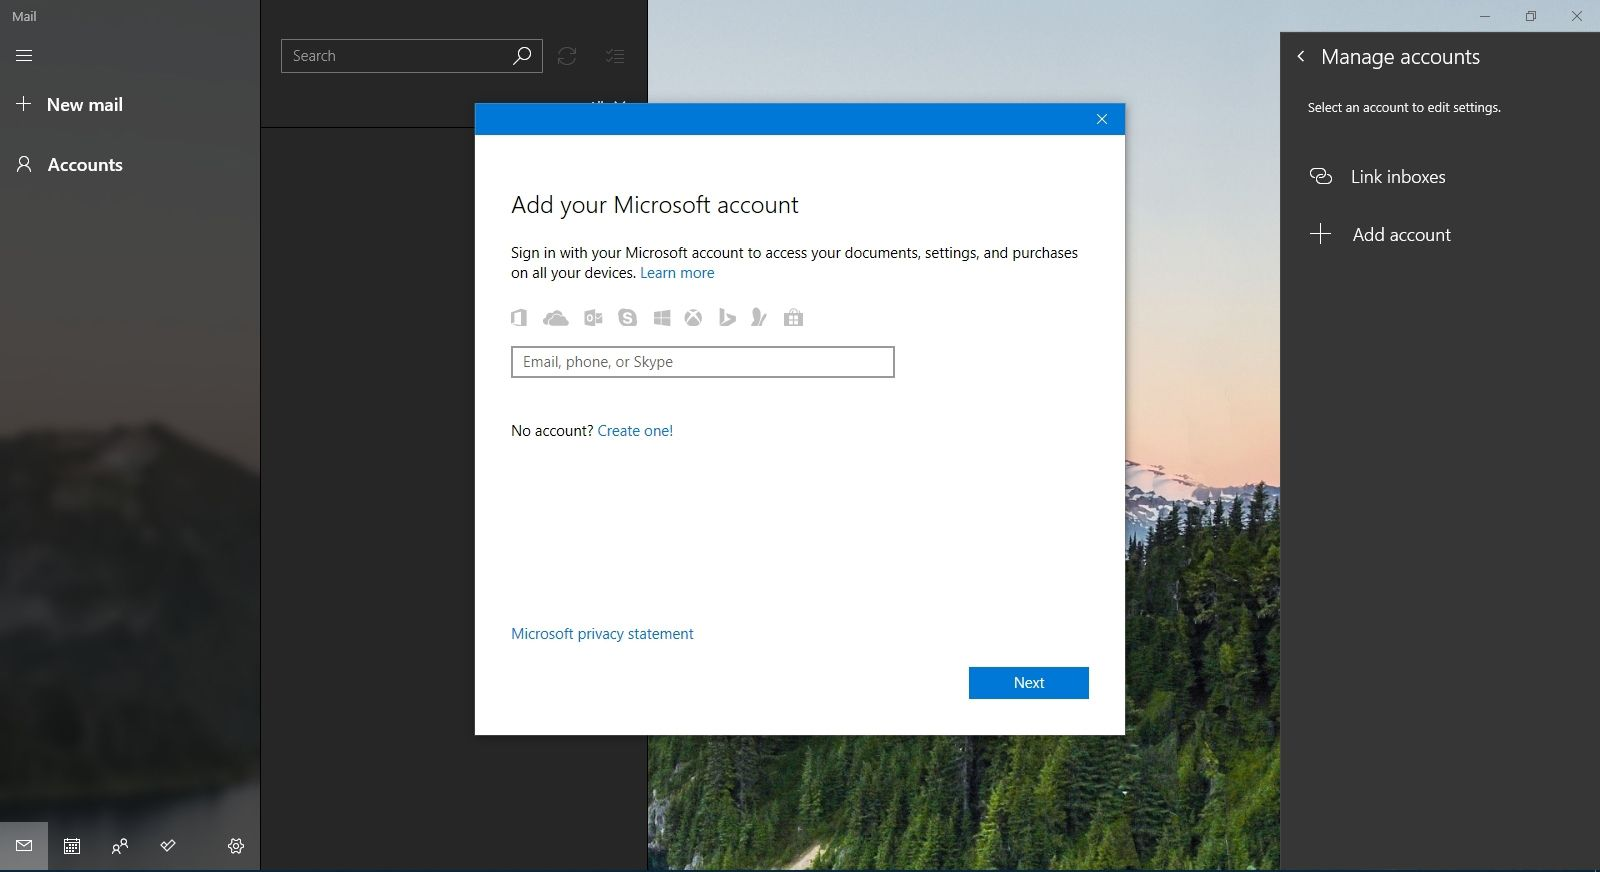 Preparing to enter an email to setup in Mail in Windows 10.